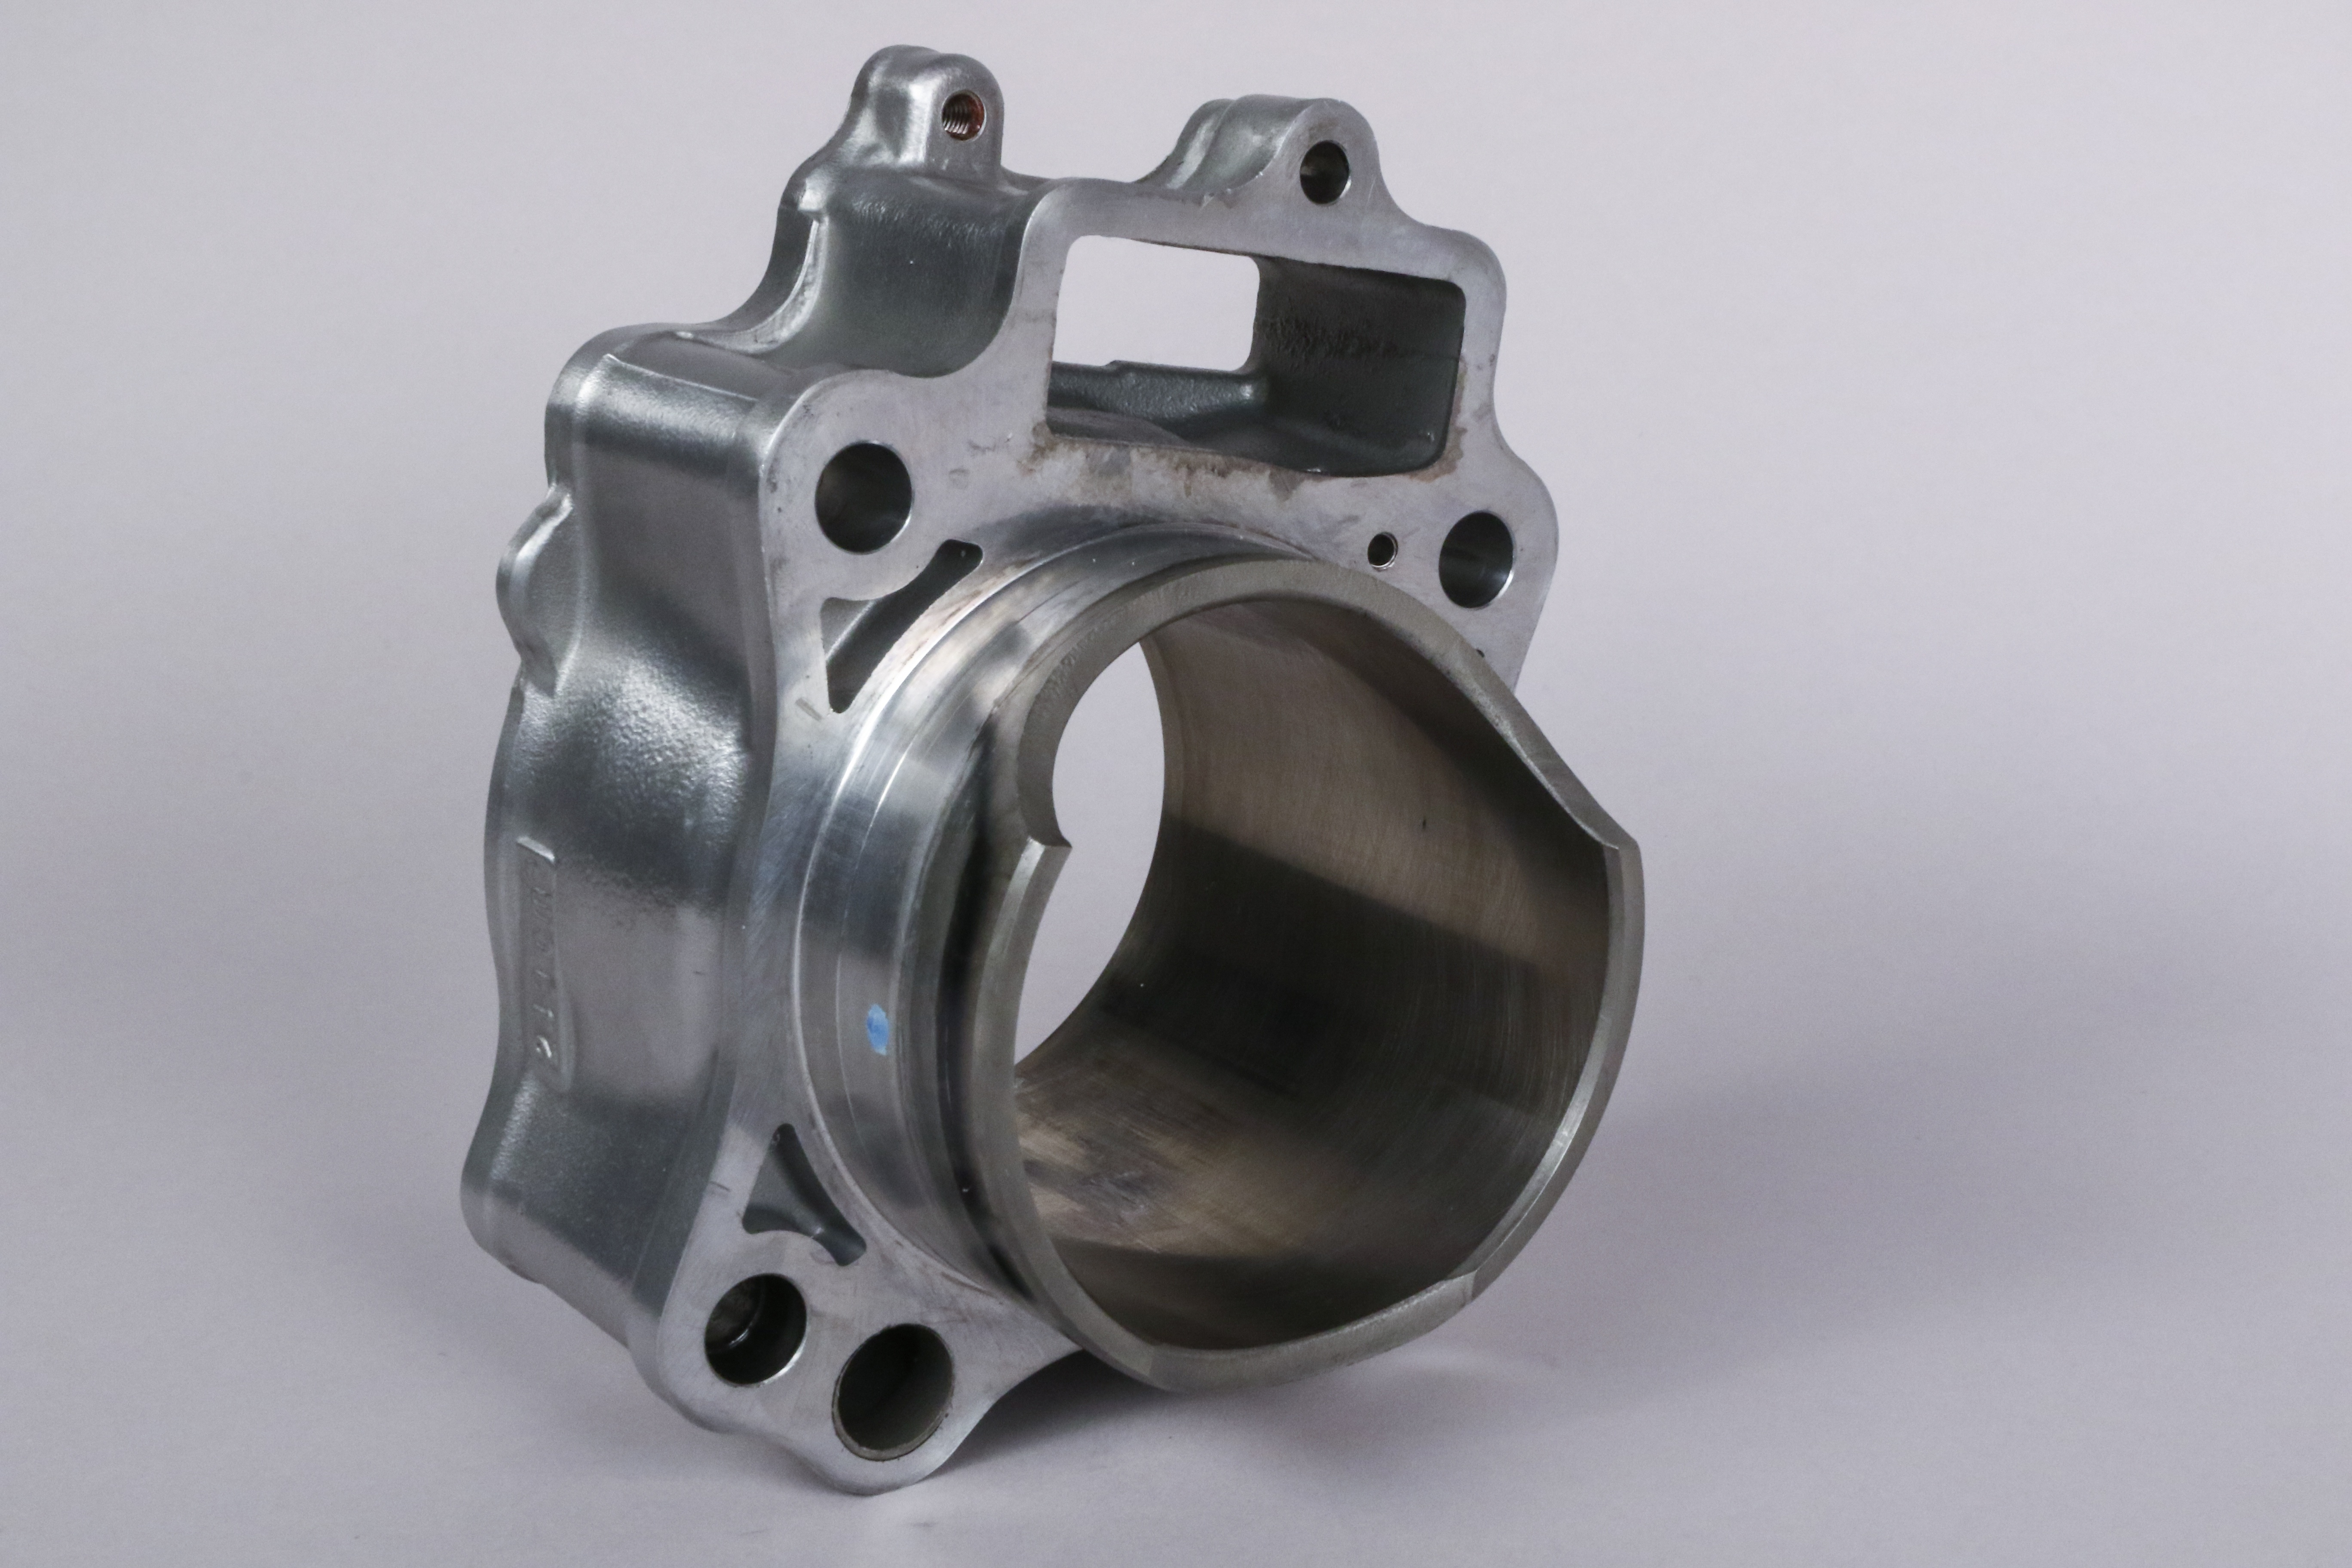 Compression Ratio Theory and How to Calculate in Powersports